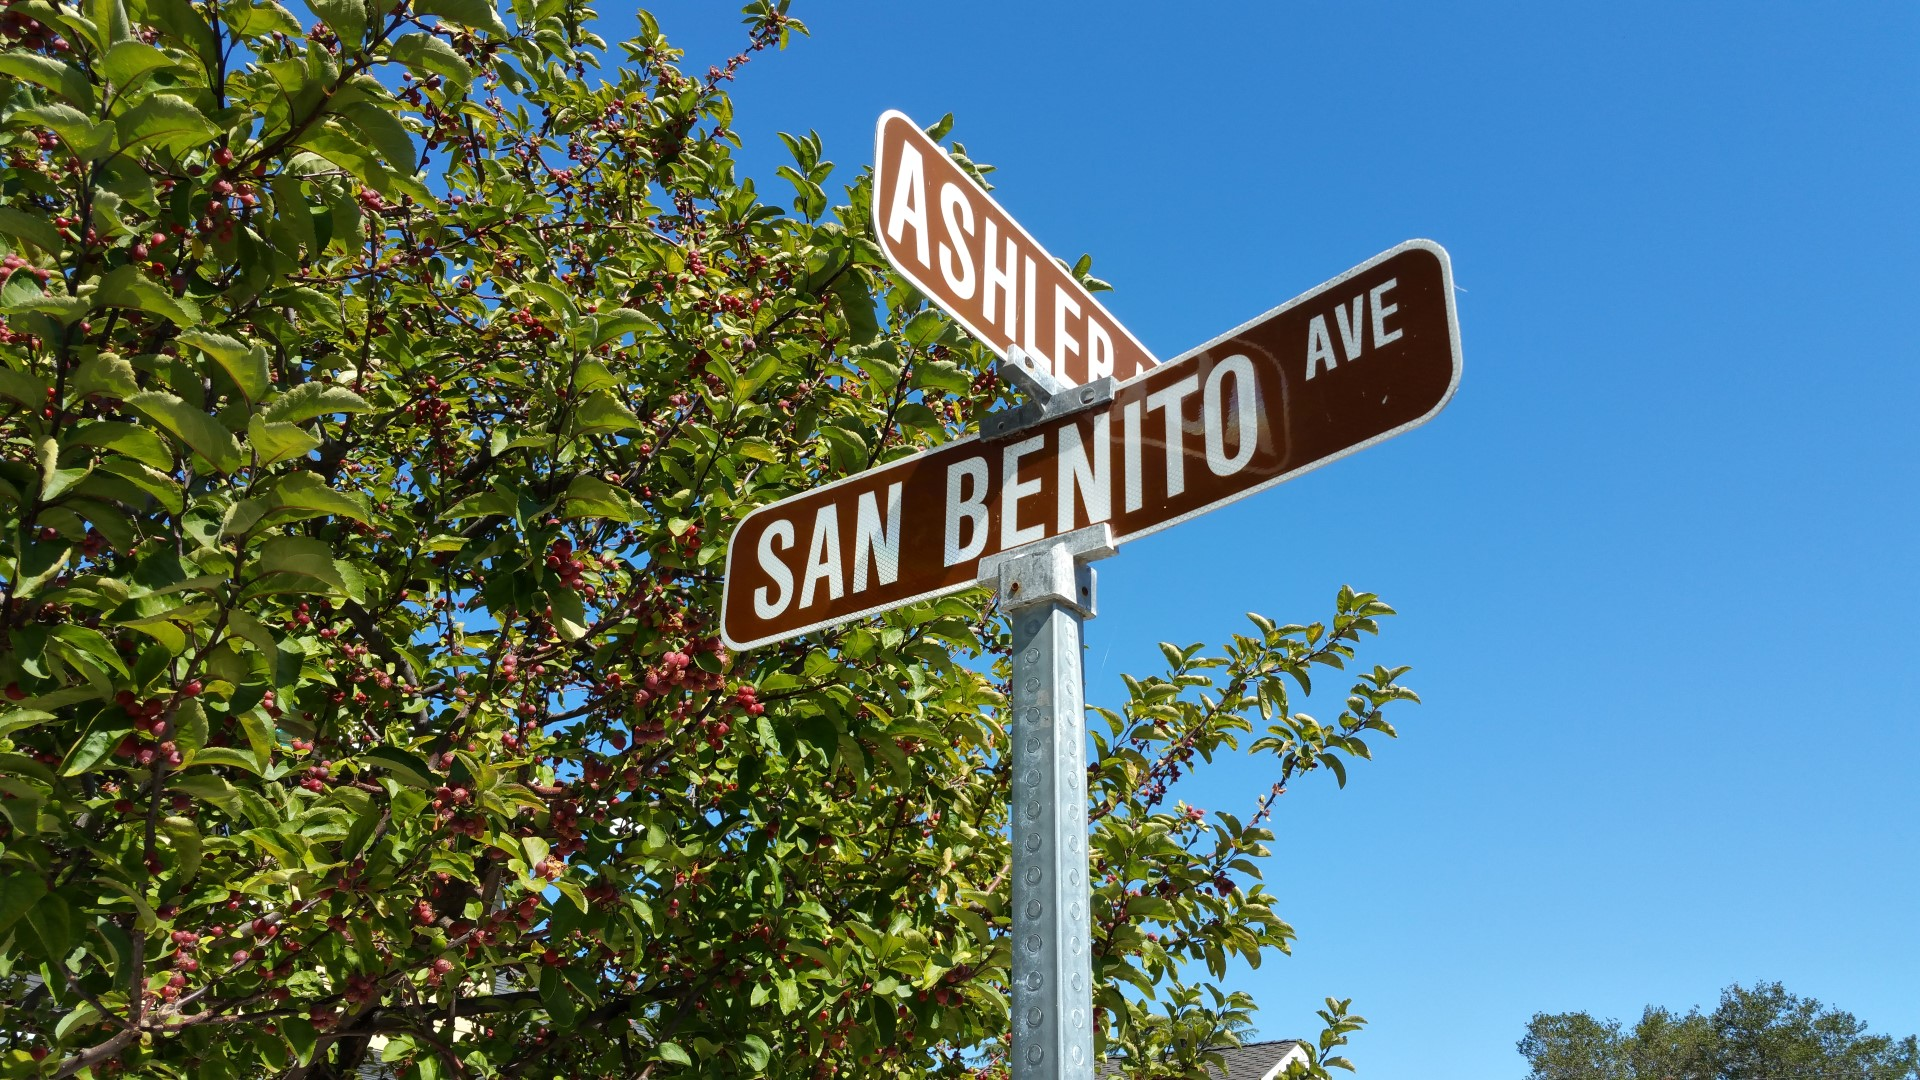 5 Ashler San Benito sign1 - Creffield Heights and San Benito Avenue area